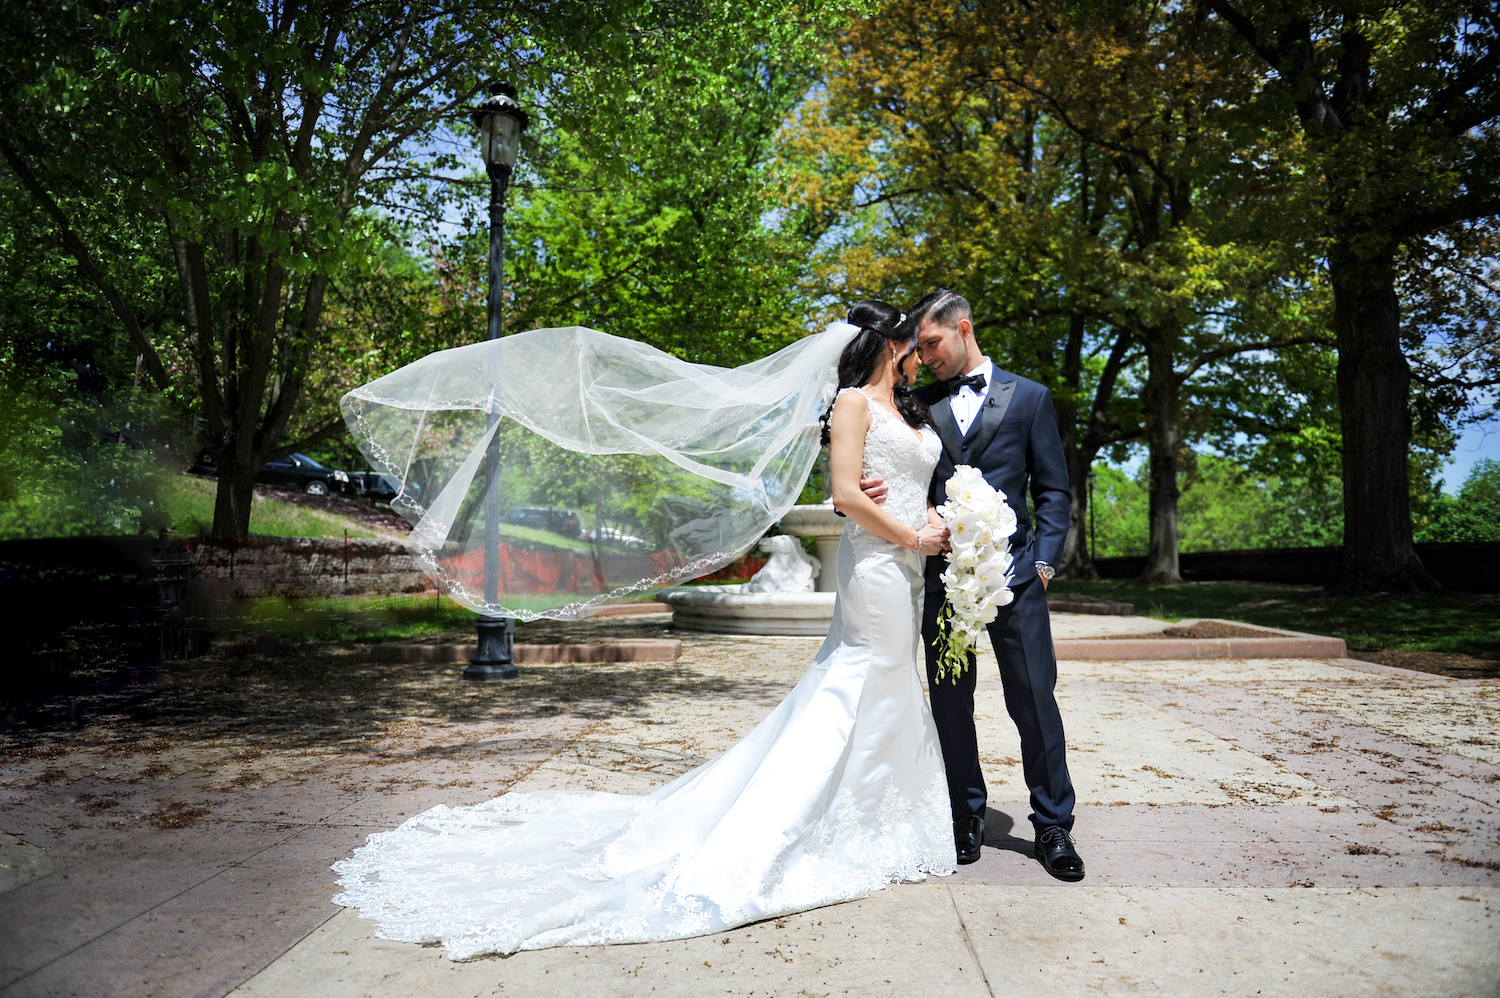 Nicole and James – Wedding Photo Highlights from Westmount Country Club in Woodland Park, NJ